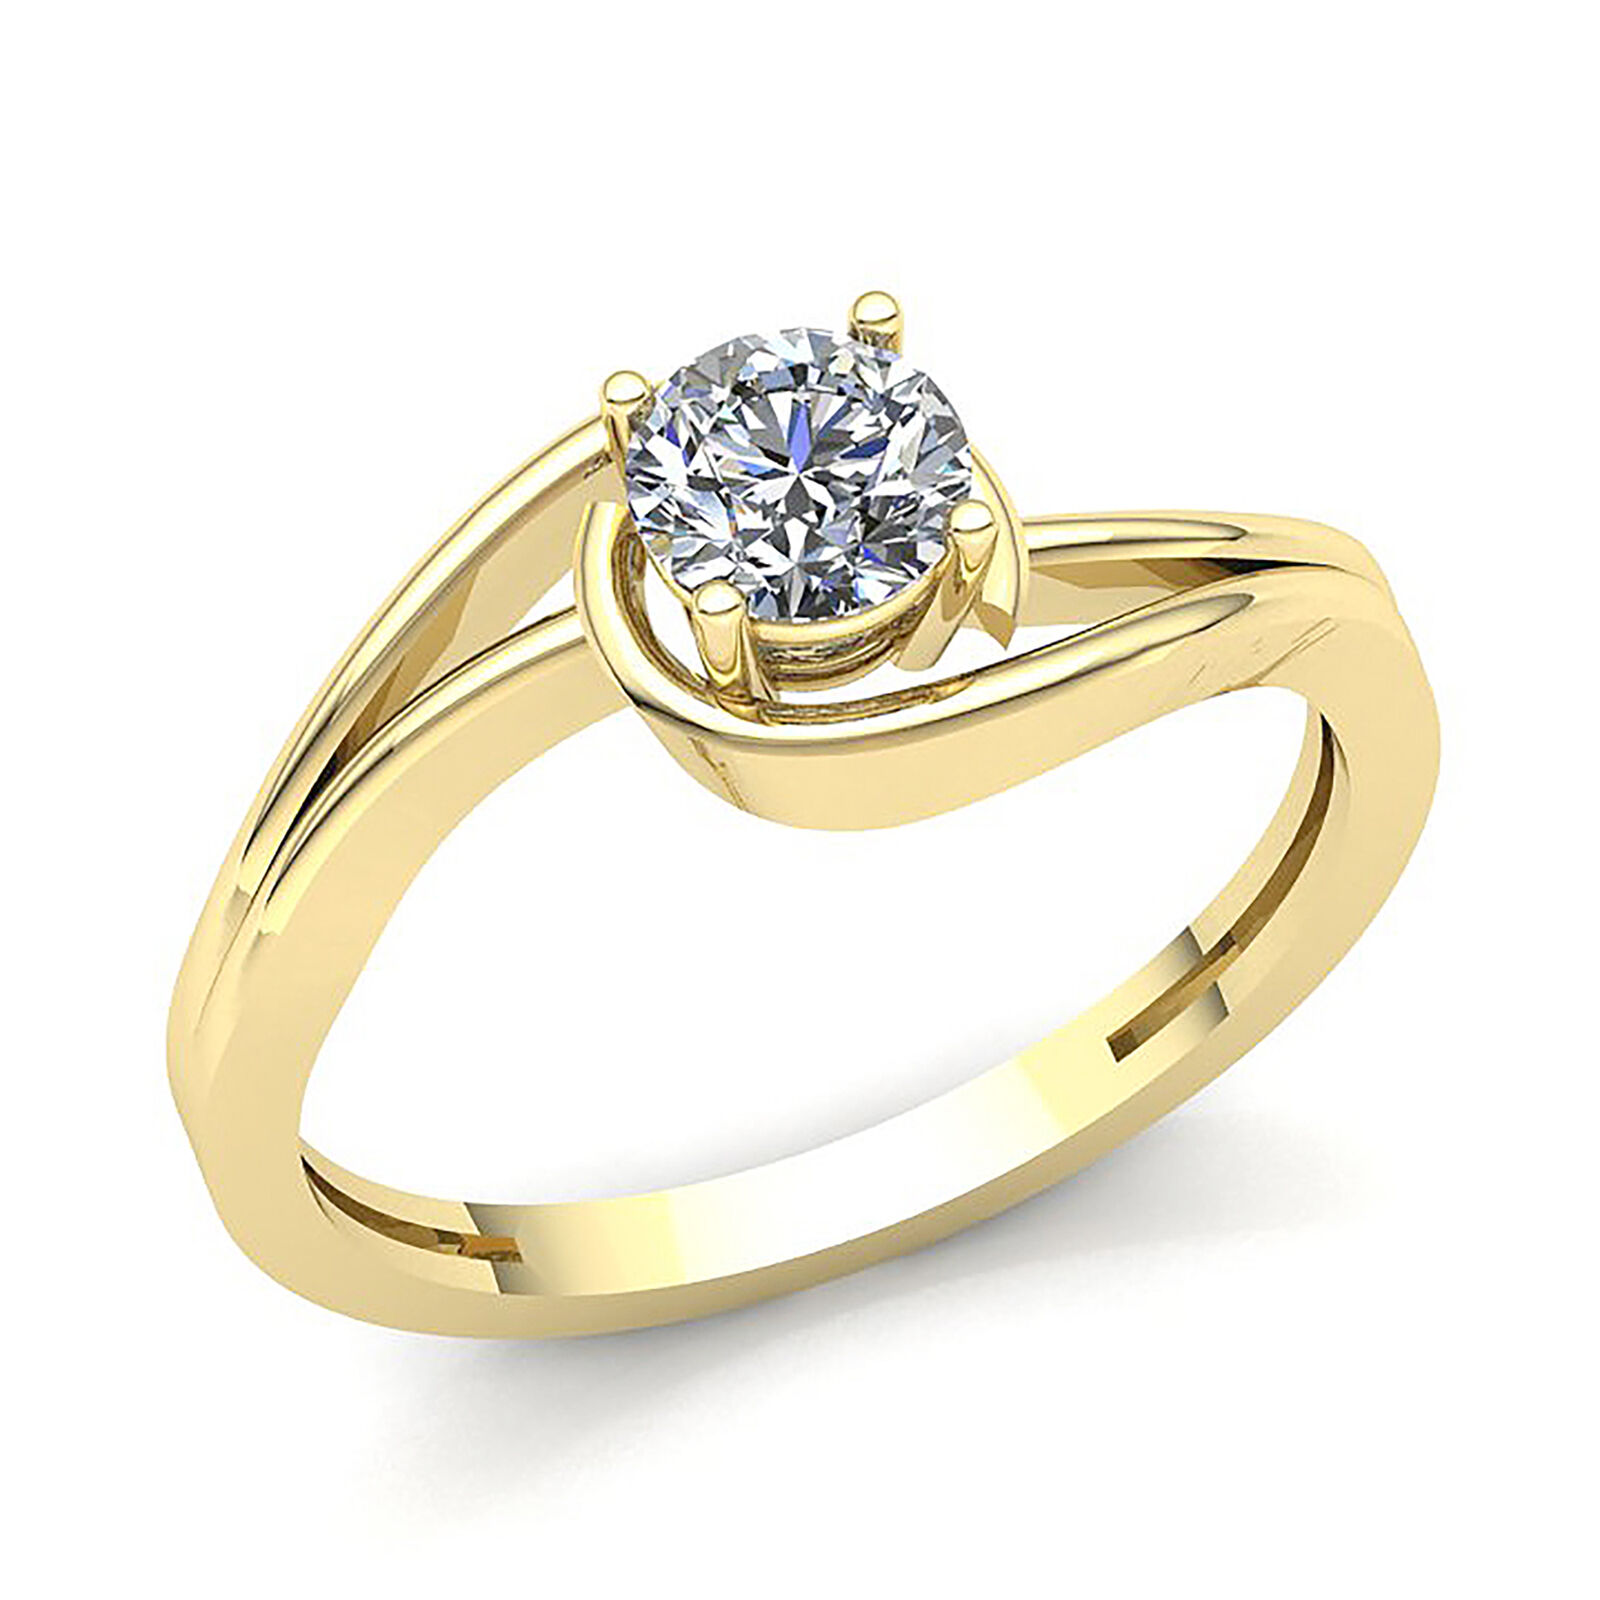 Genuine 0.6ct Round Diamond Women's Bridal Solitaire Engagement Ring 10K gold